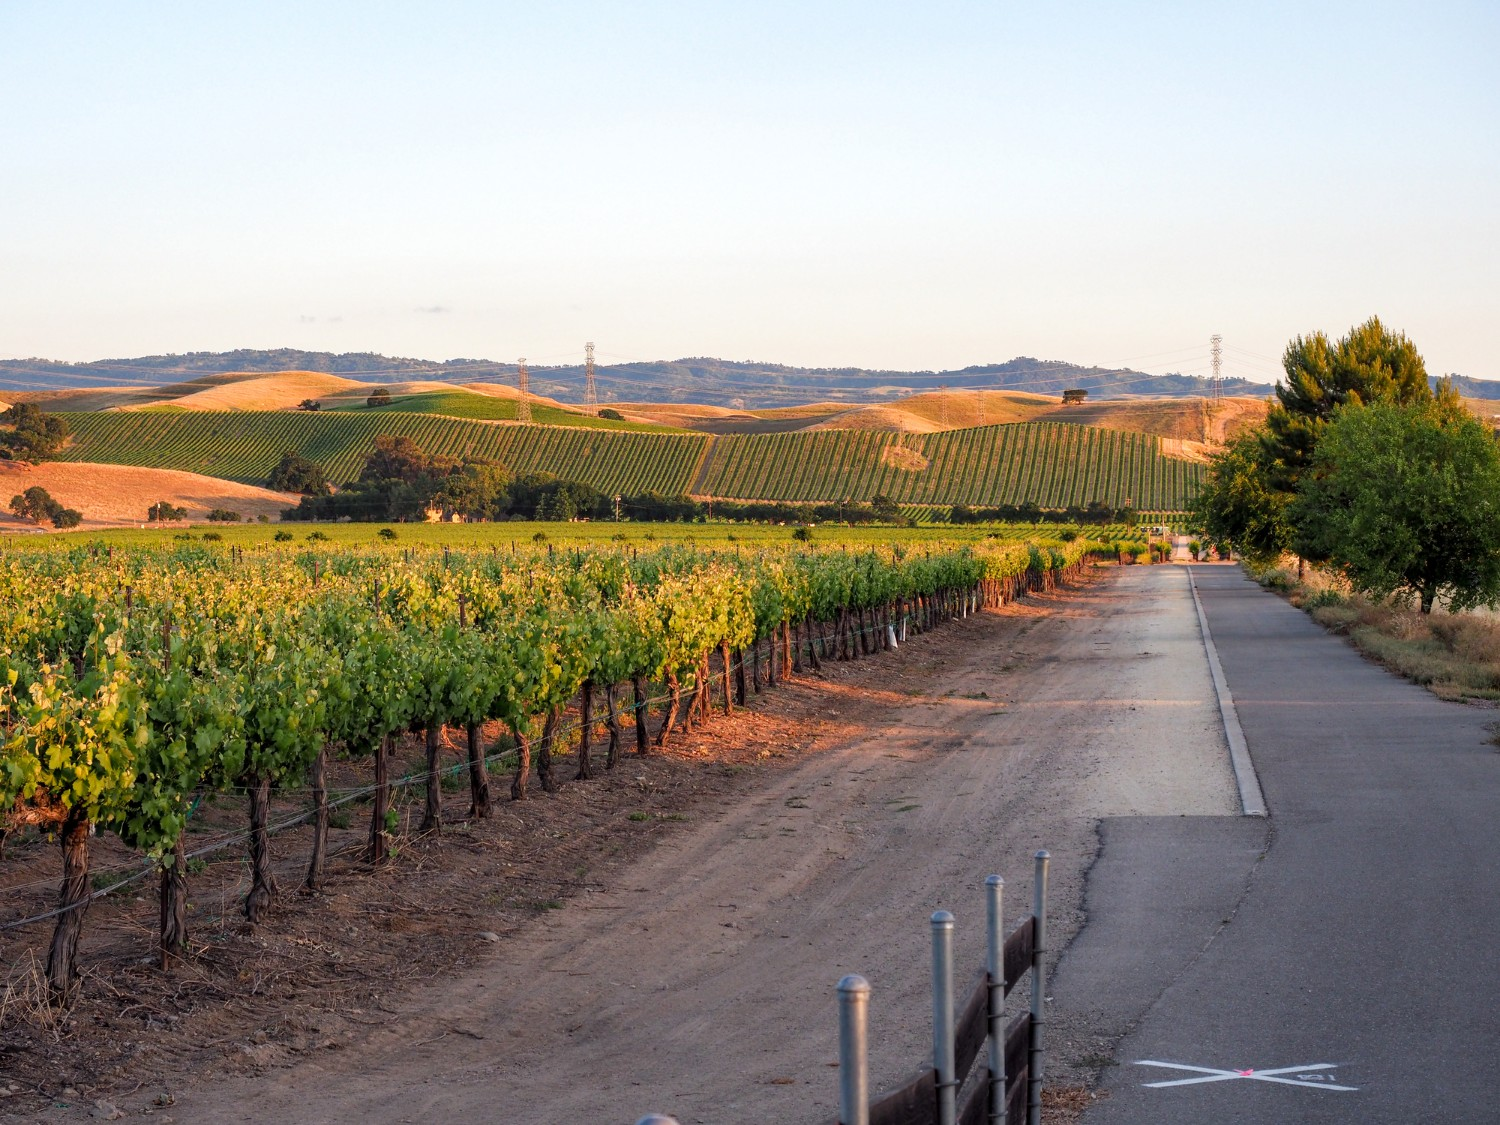 A vineyard and bike trail at sunset in Livermore Valley.